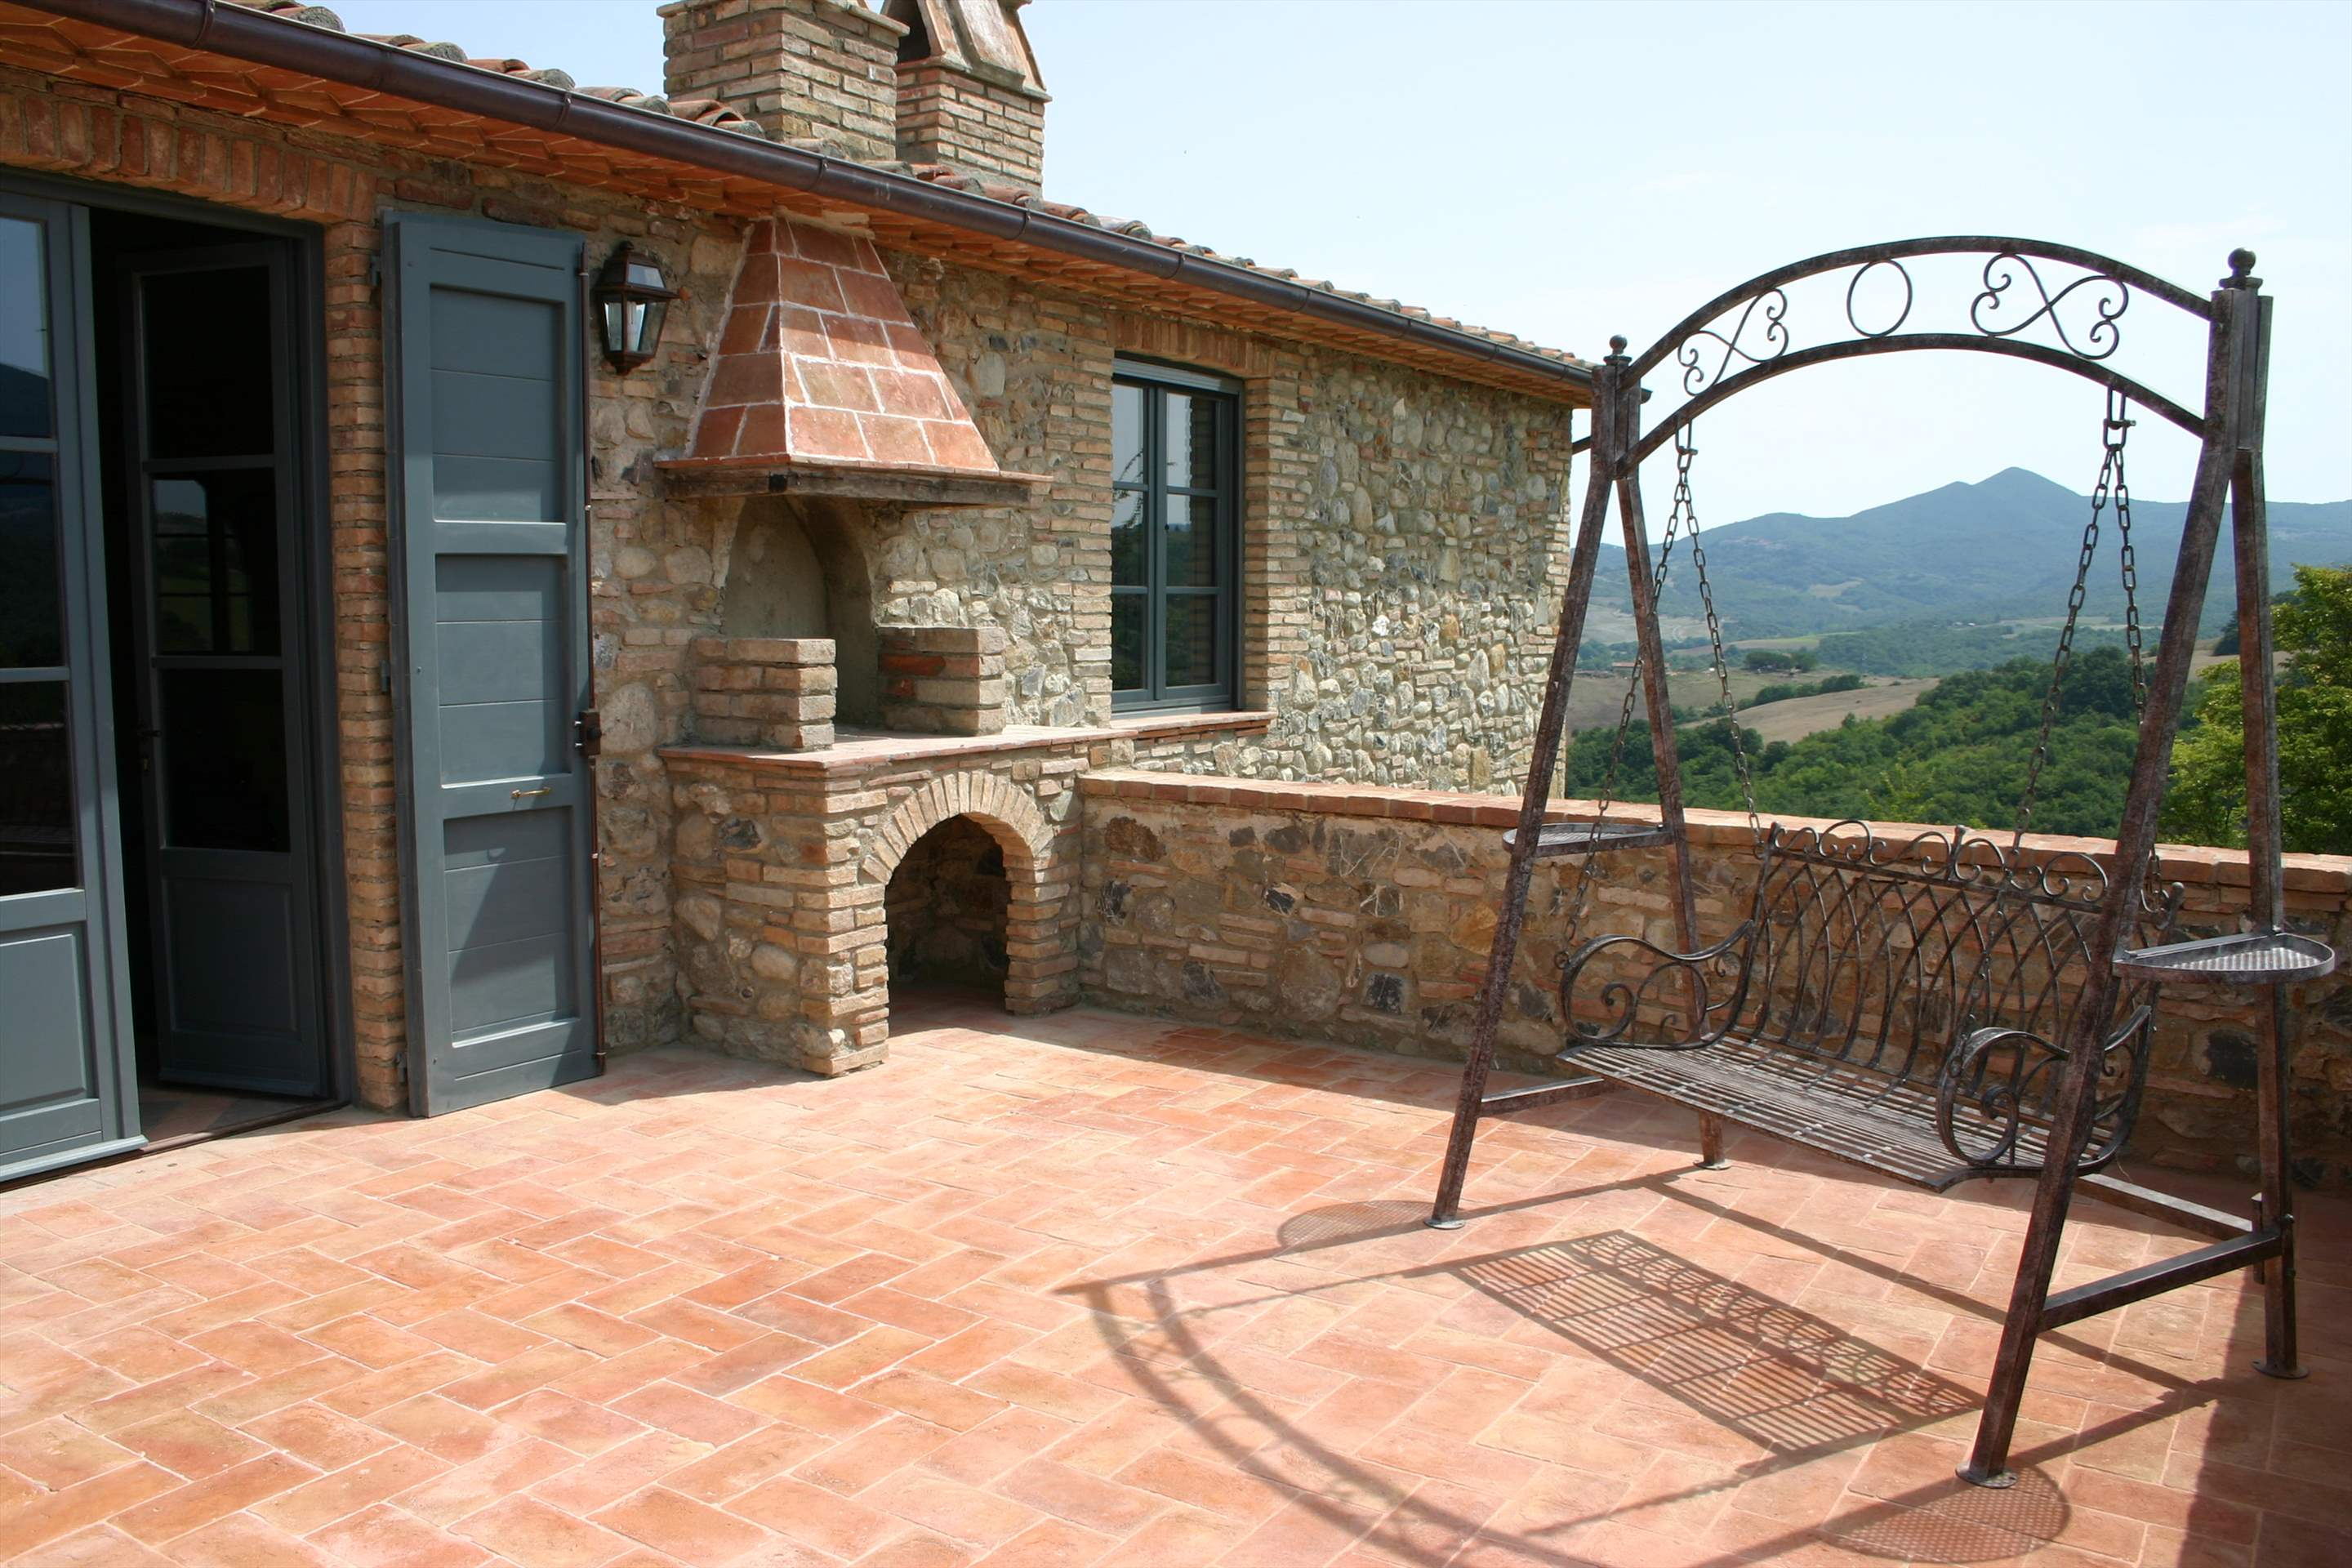 Podere Di Collina, Villa & Apts, 8 bedroom villa in Tuscany Coast, Tuscany Photo #17